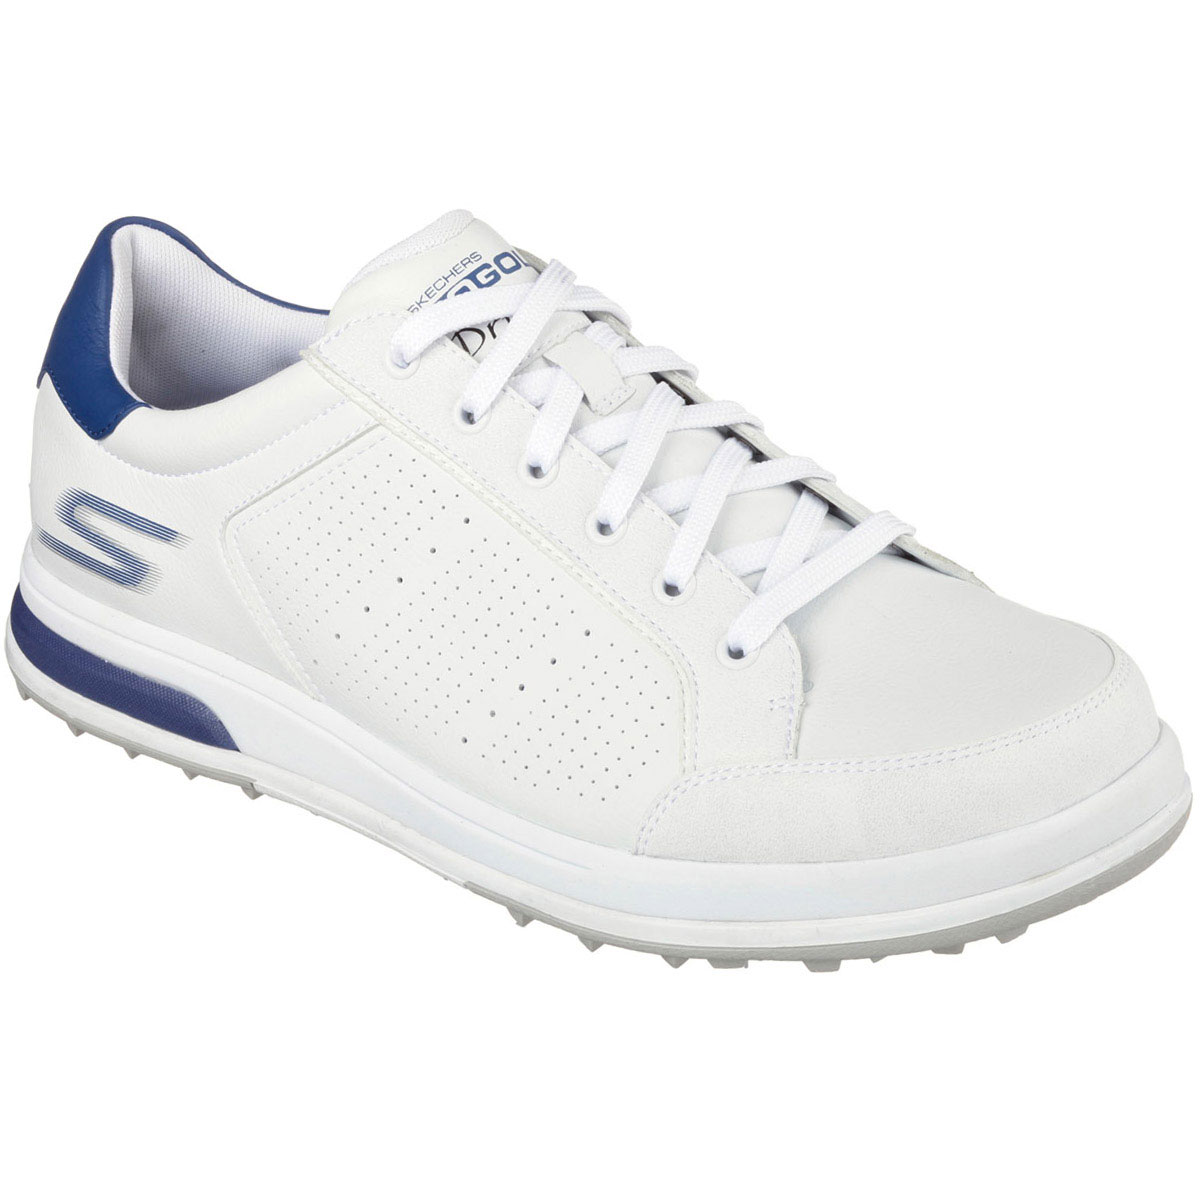 Skechers Go Drive  Water Resistant Golf Shoes